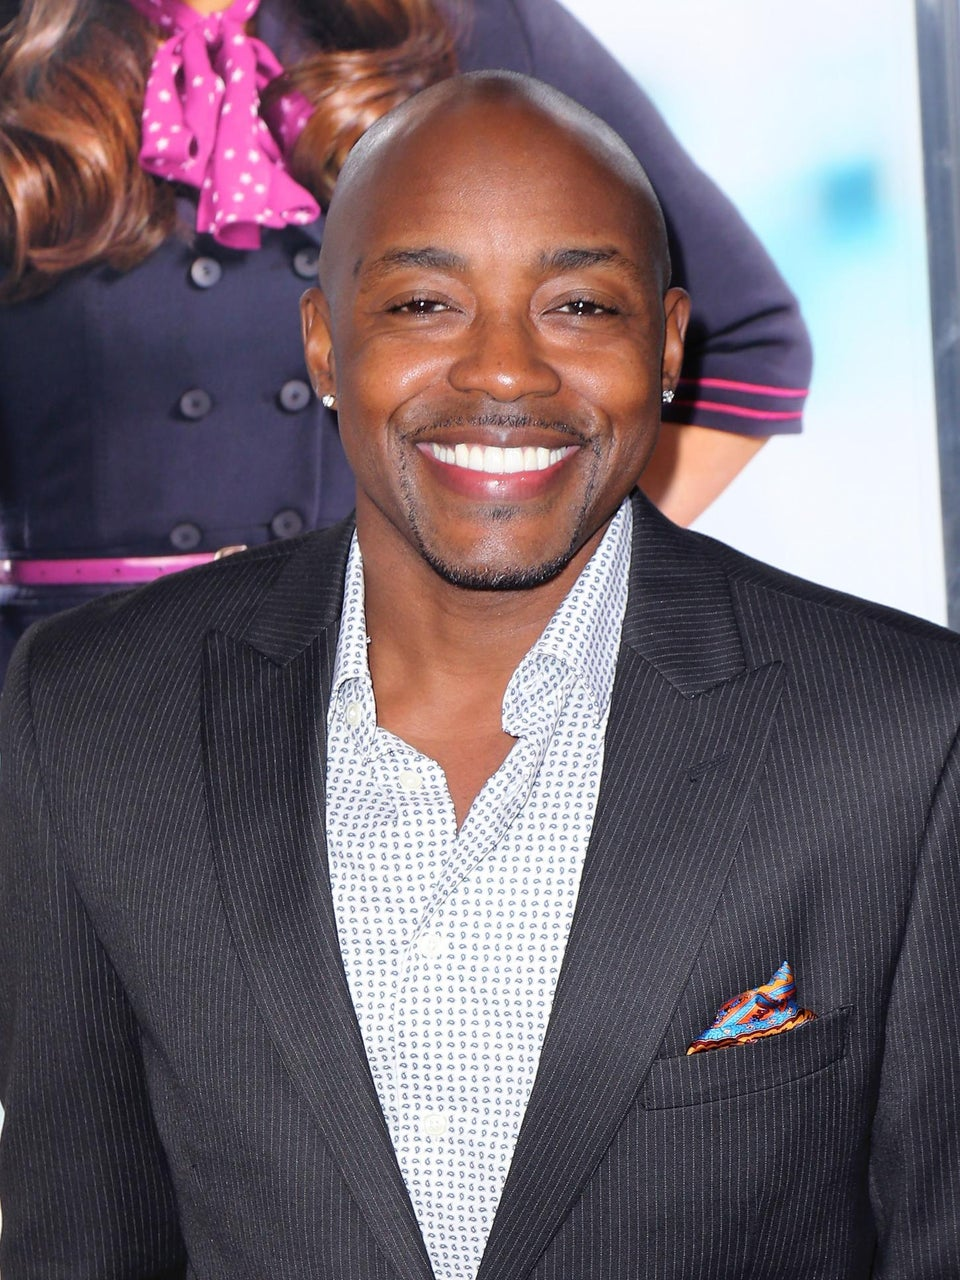 Will Packer Pens Passionate Open Letter to The Academy About Lack of Diversity: 'This is Embarrassing'